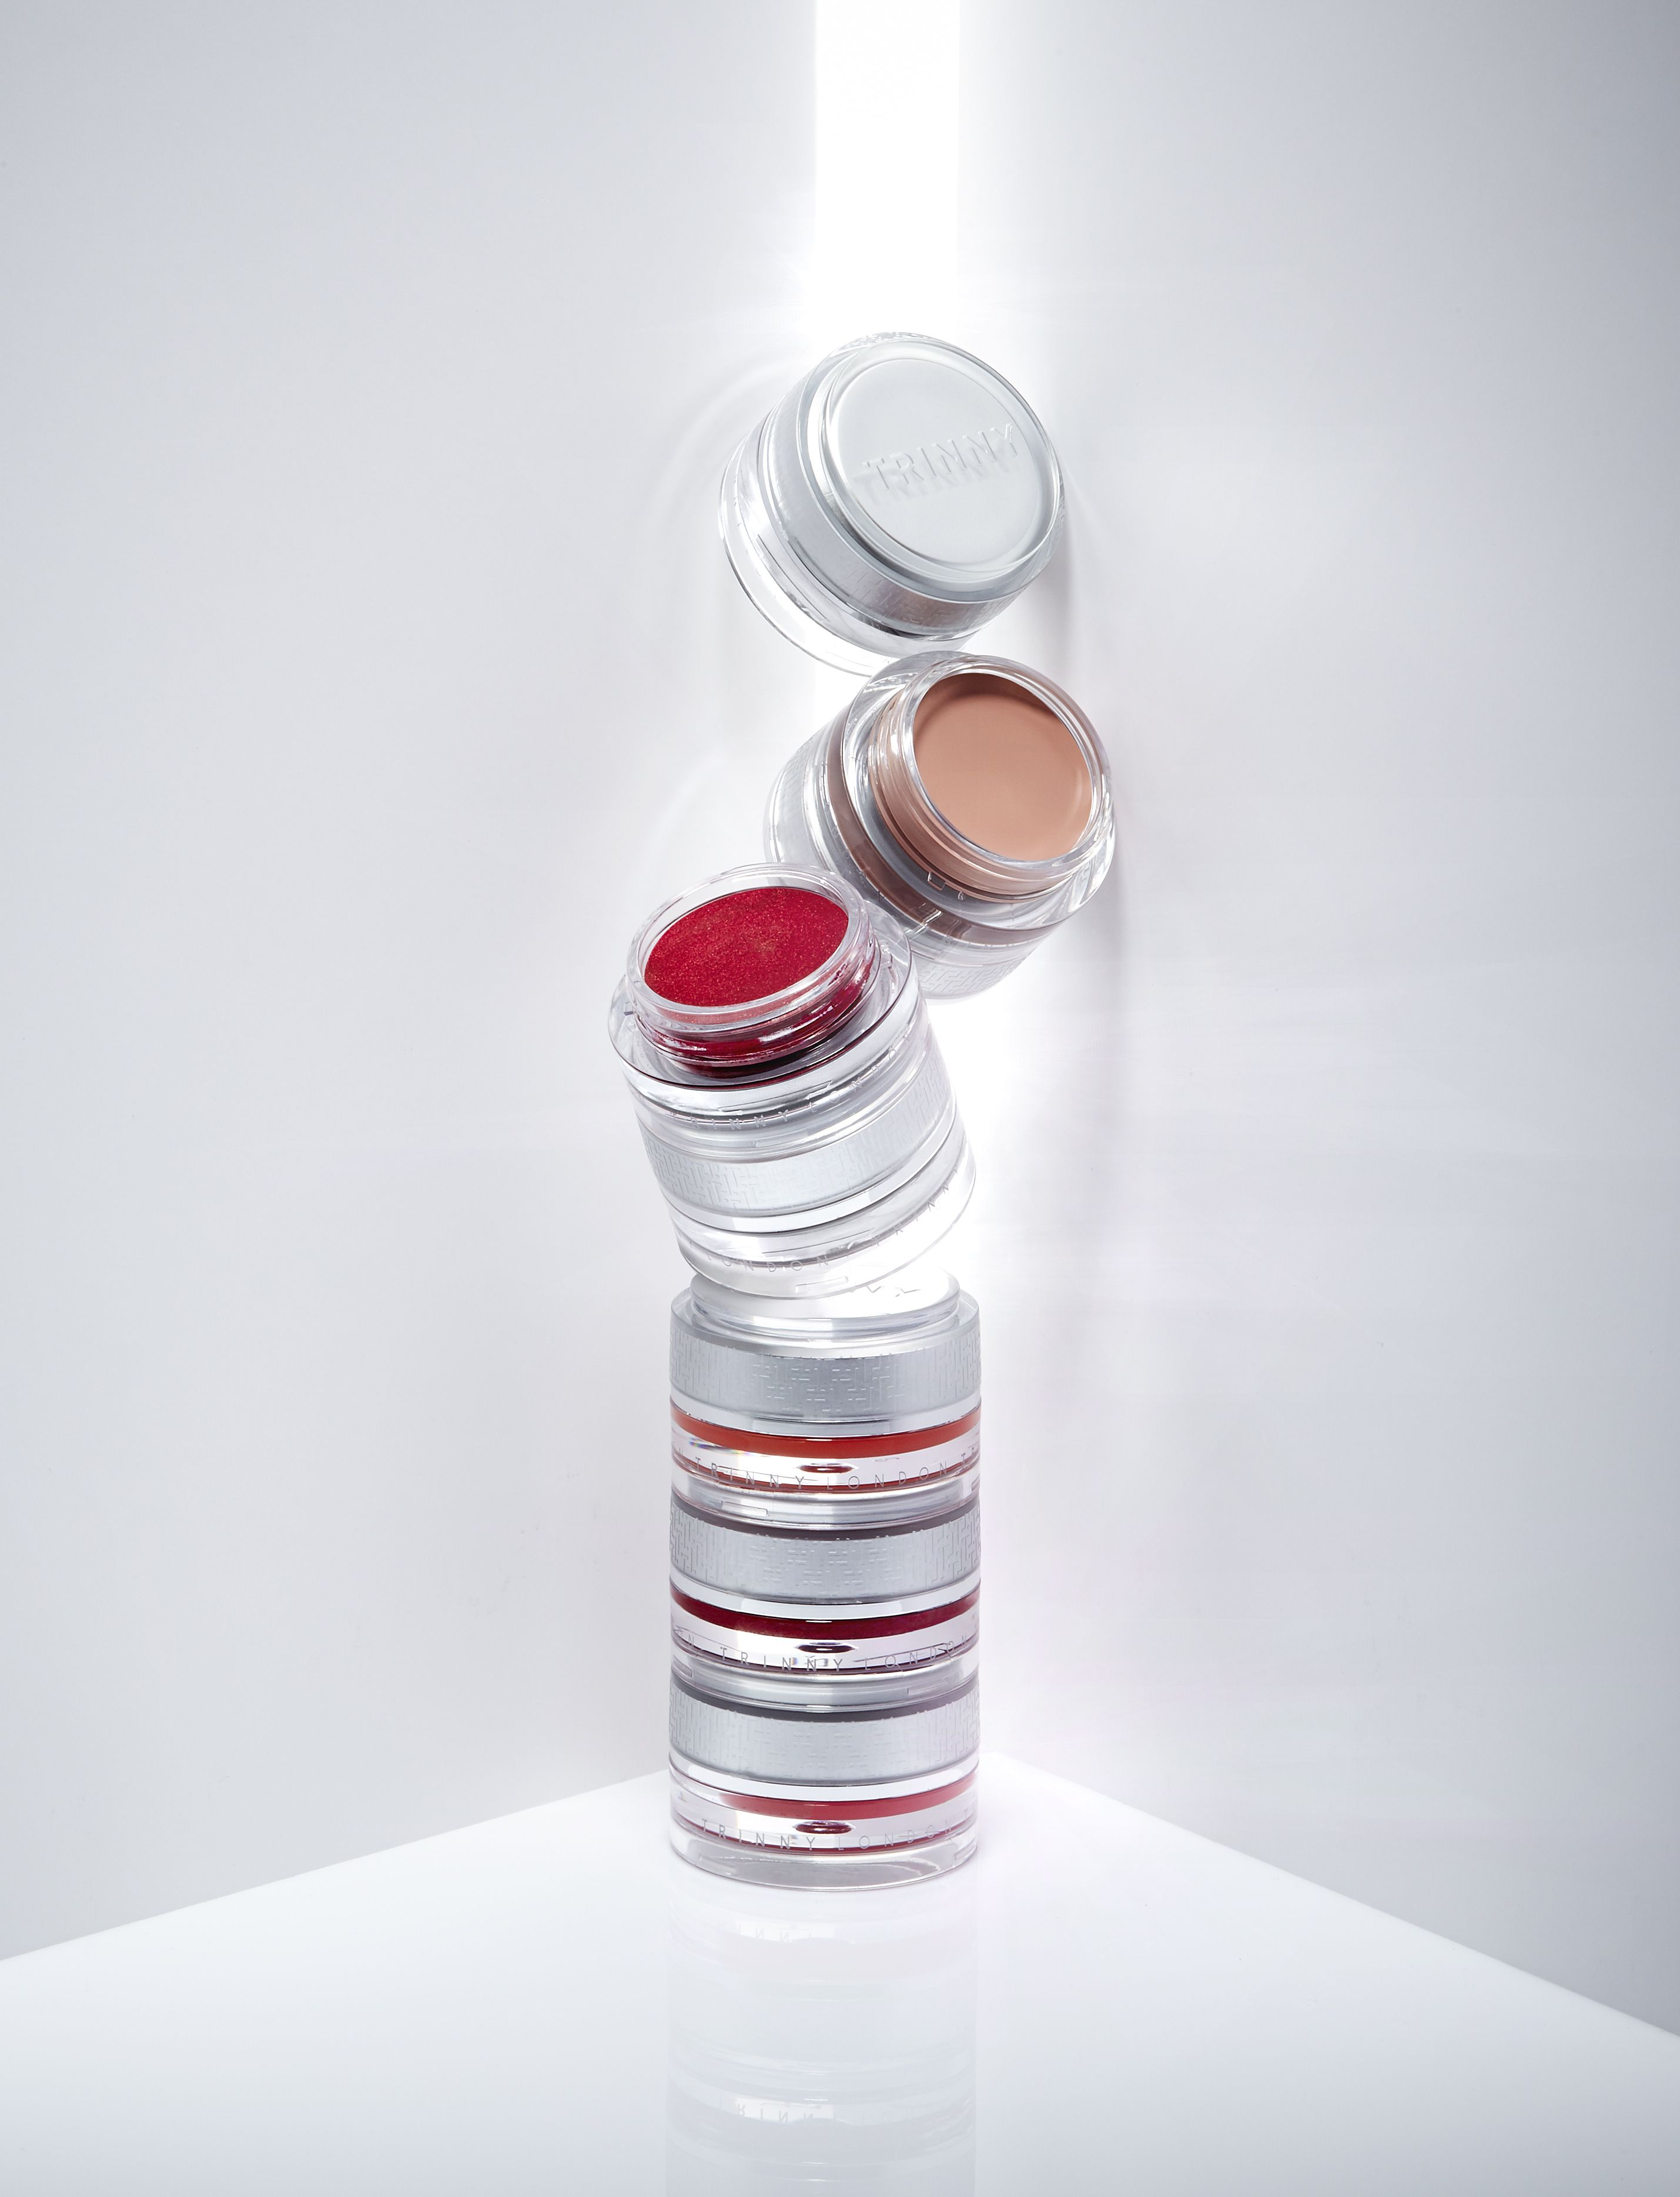 Trinny London, a stackable, portable, curated makeup range ...